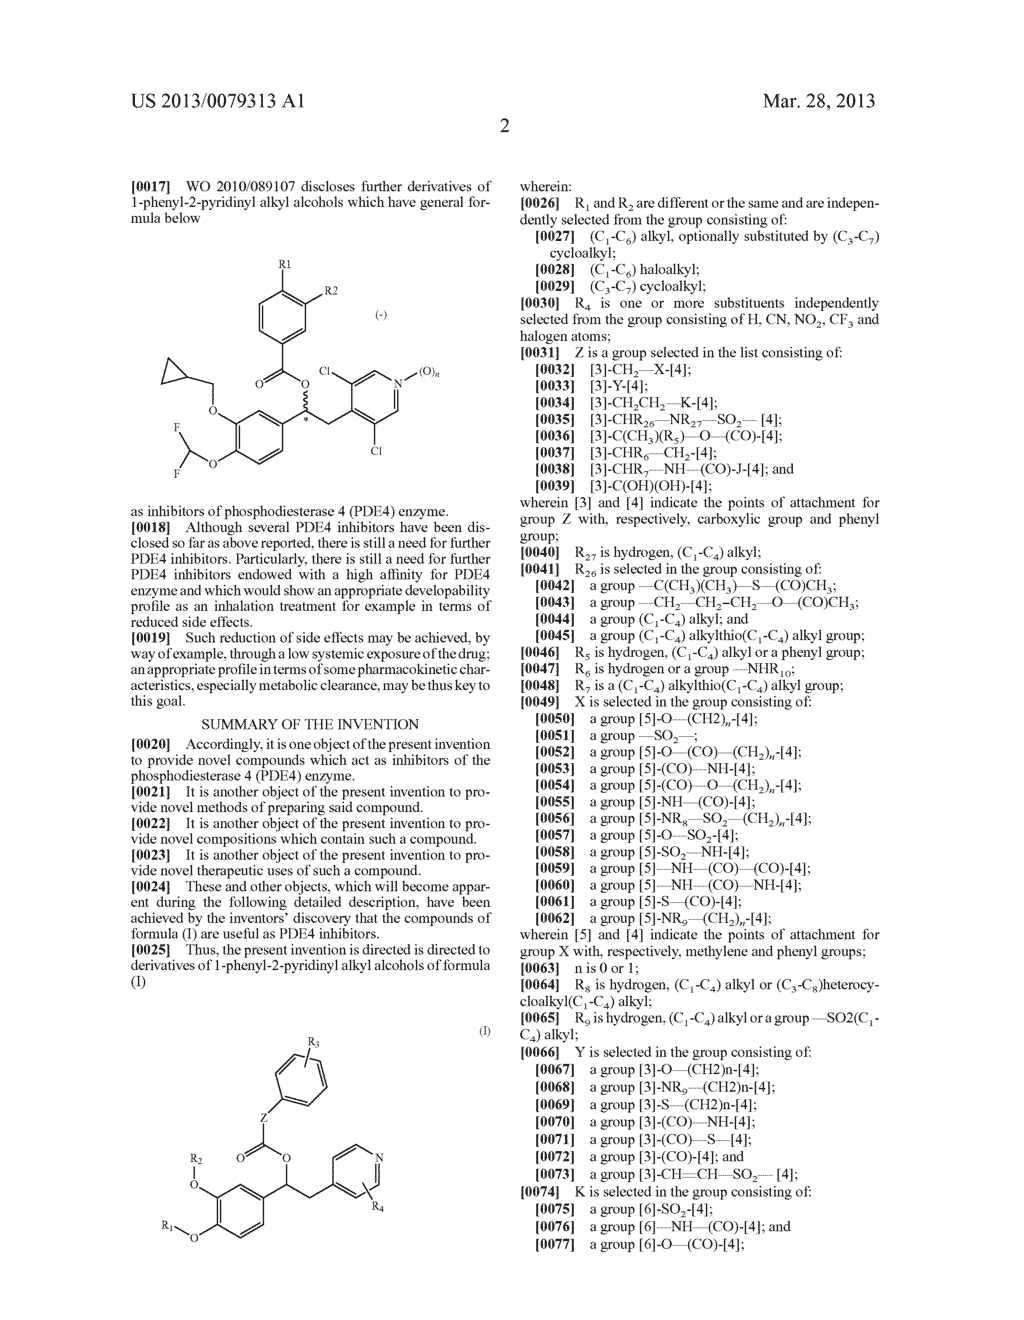 DERIVATIVES OF 1-PHENYL-2-PYRIDINYL ALKYL ALCOHOLS AS PHOSPHODIESTERASE     INHIBITORS - diagram, schematic, and image 03